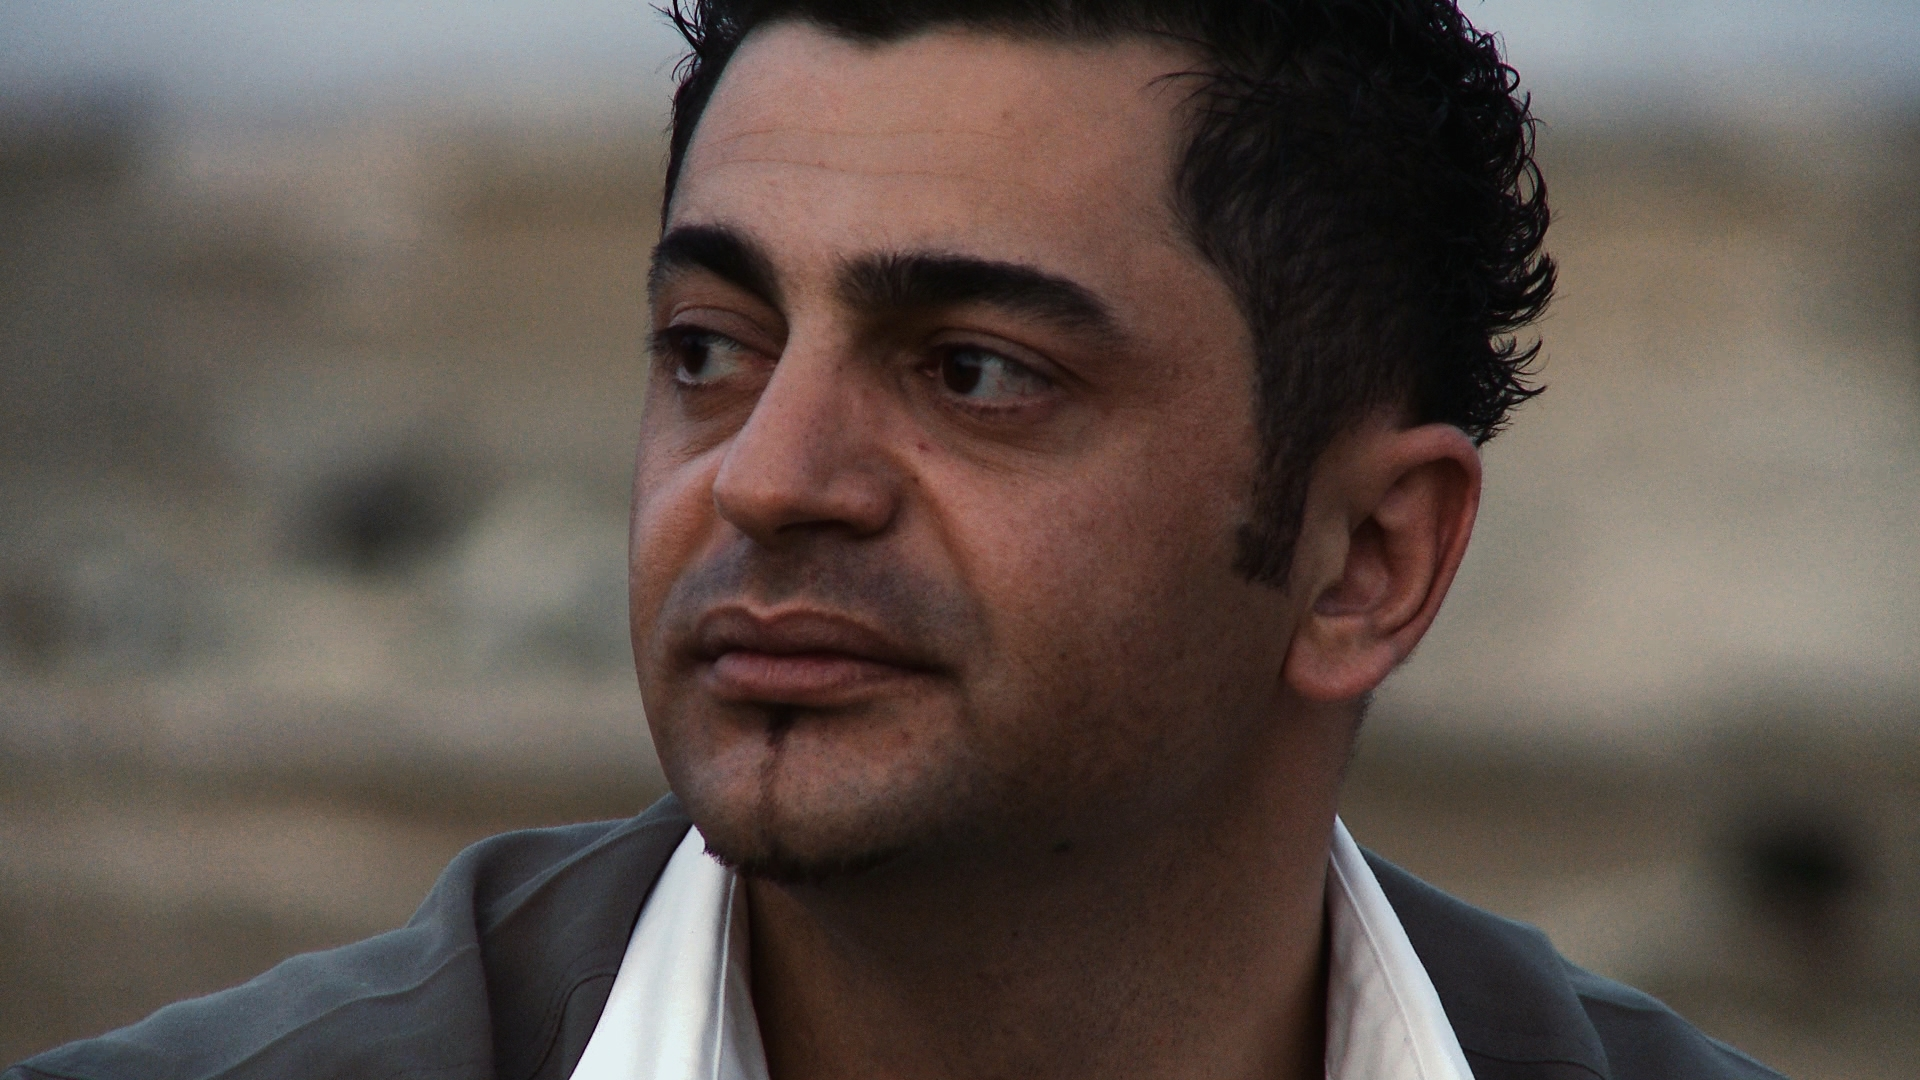 The story of TEIMOUR ABDULLAH MOHAMMED is one of the iconic stories of Anfal. He was the first person to provide an eyewitness account of the mass killing of Kurdish civilians by Iraqi death squads. His life was saved by an Arab bedouin family who risked the lives of their entire tribe to protect a little boy from Saddam Hussein's secret police.